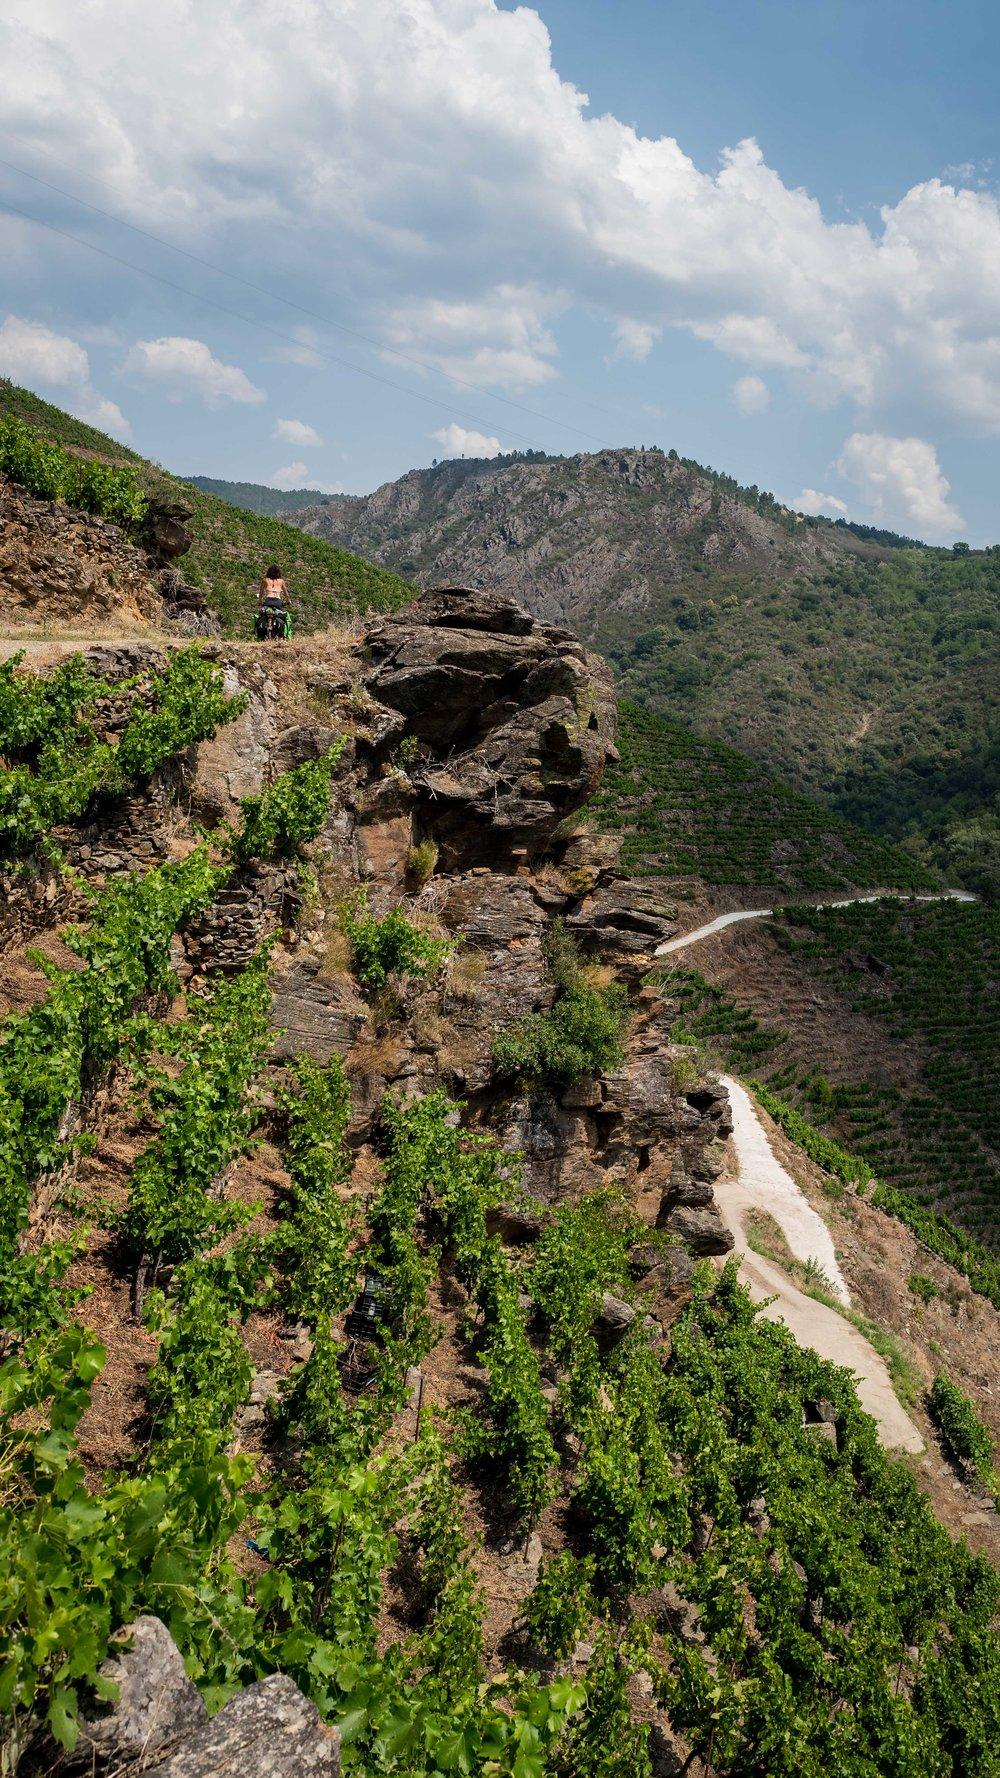 A different way of cultivating wine, using steep and narrow terraces